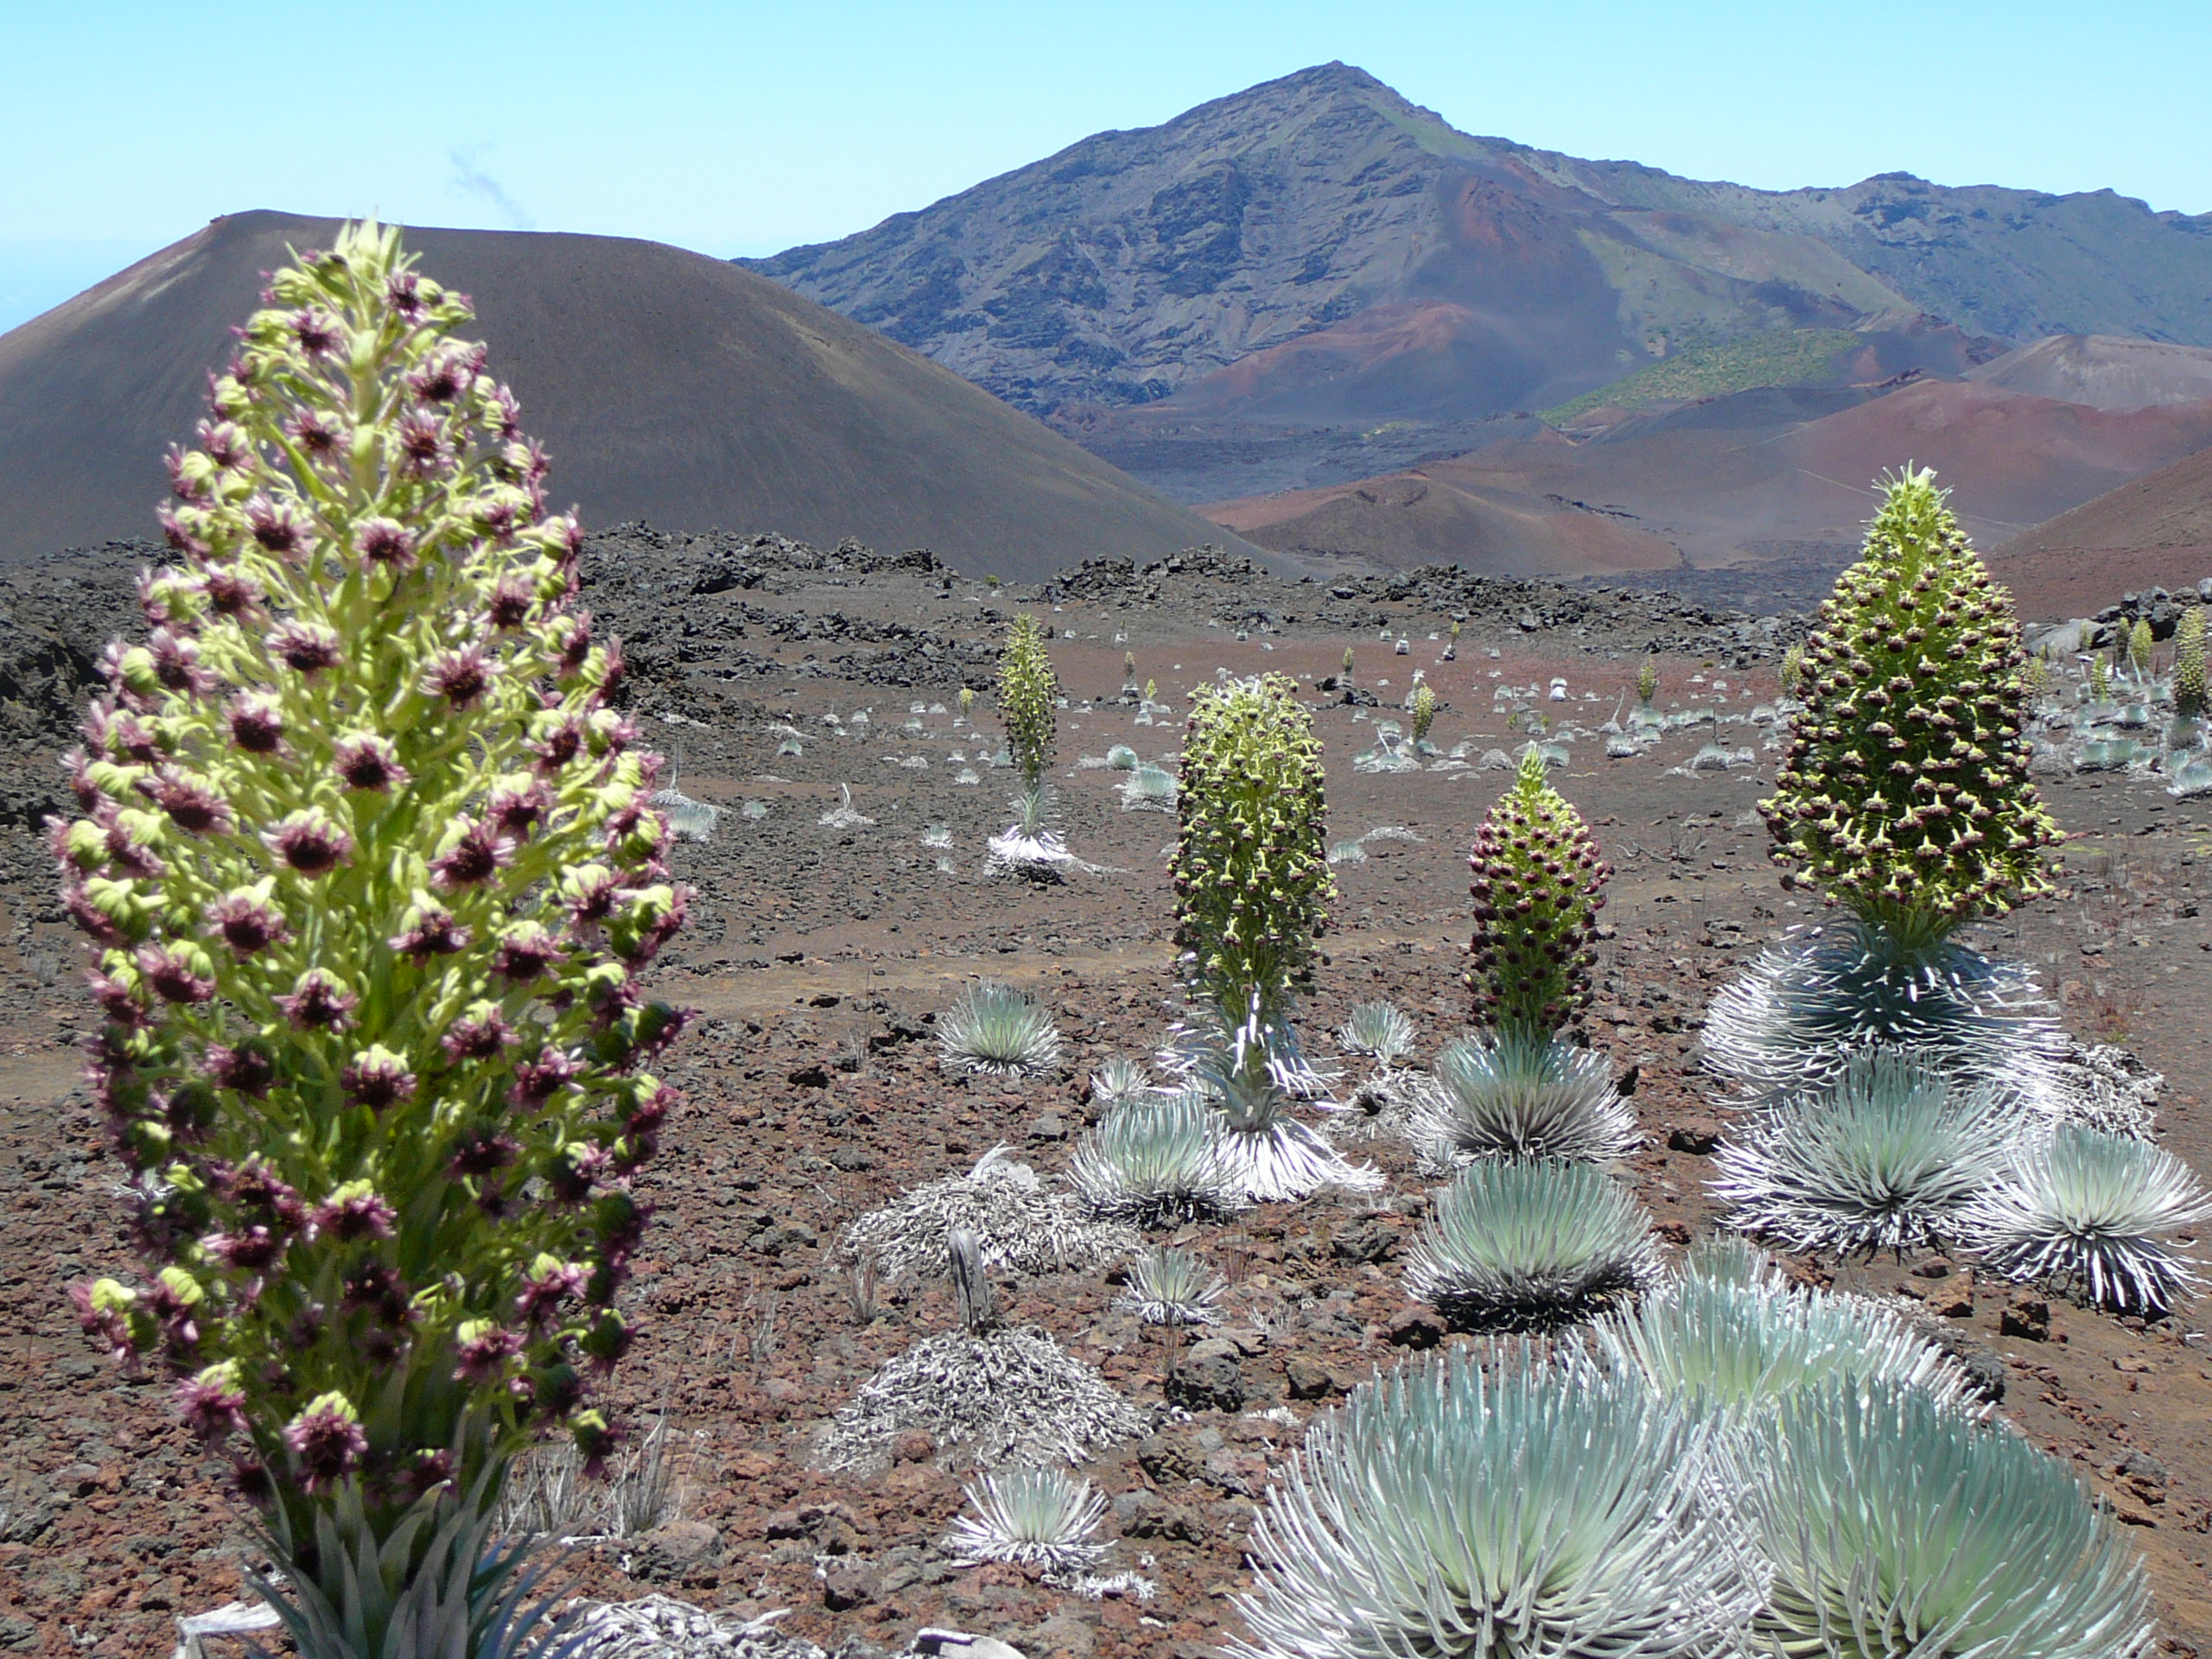 Silversword blooms in the sliding sands landscape